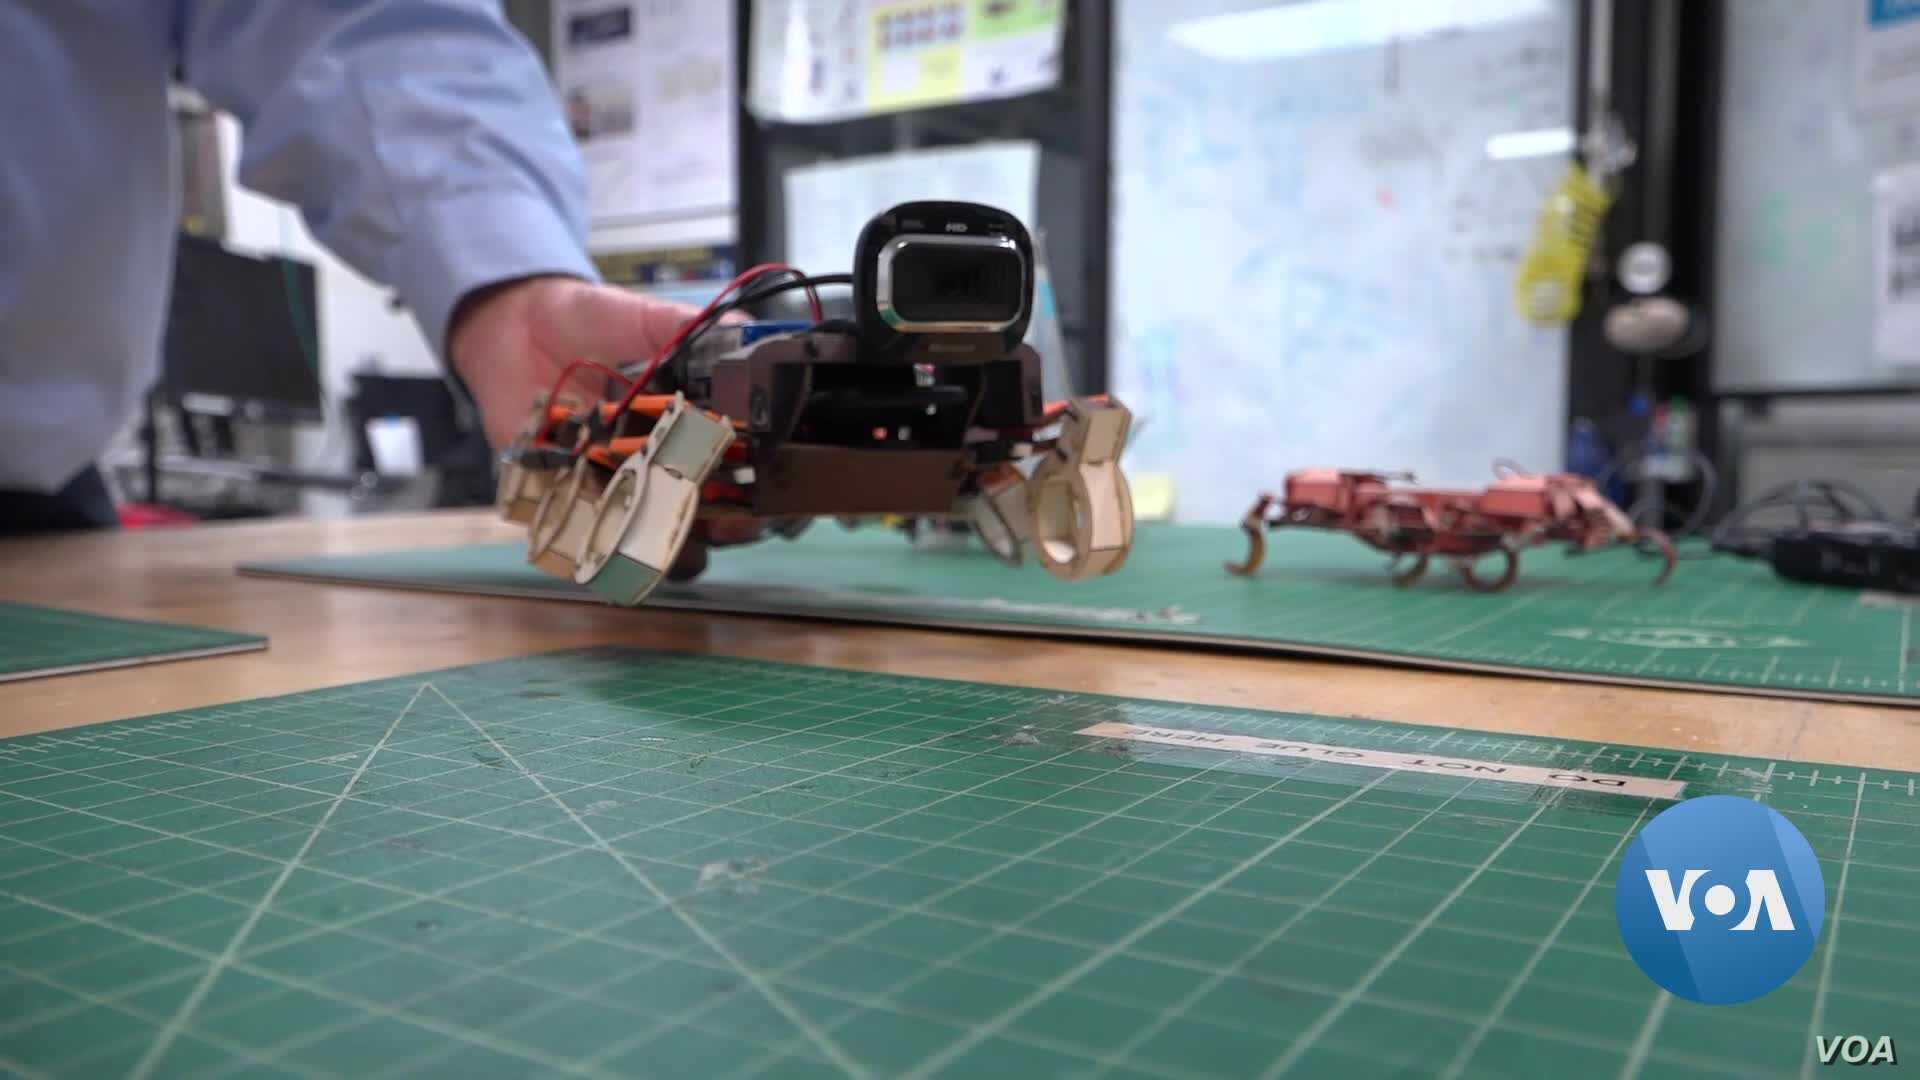 Jumping Like a Lemur, Flying Like a Dragonfly – Robots That Mimic Animal Movements May Be On Their Way